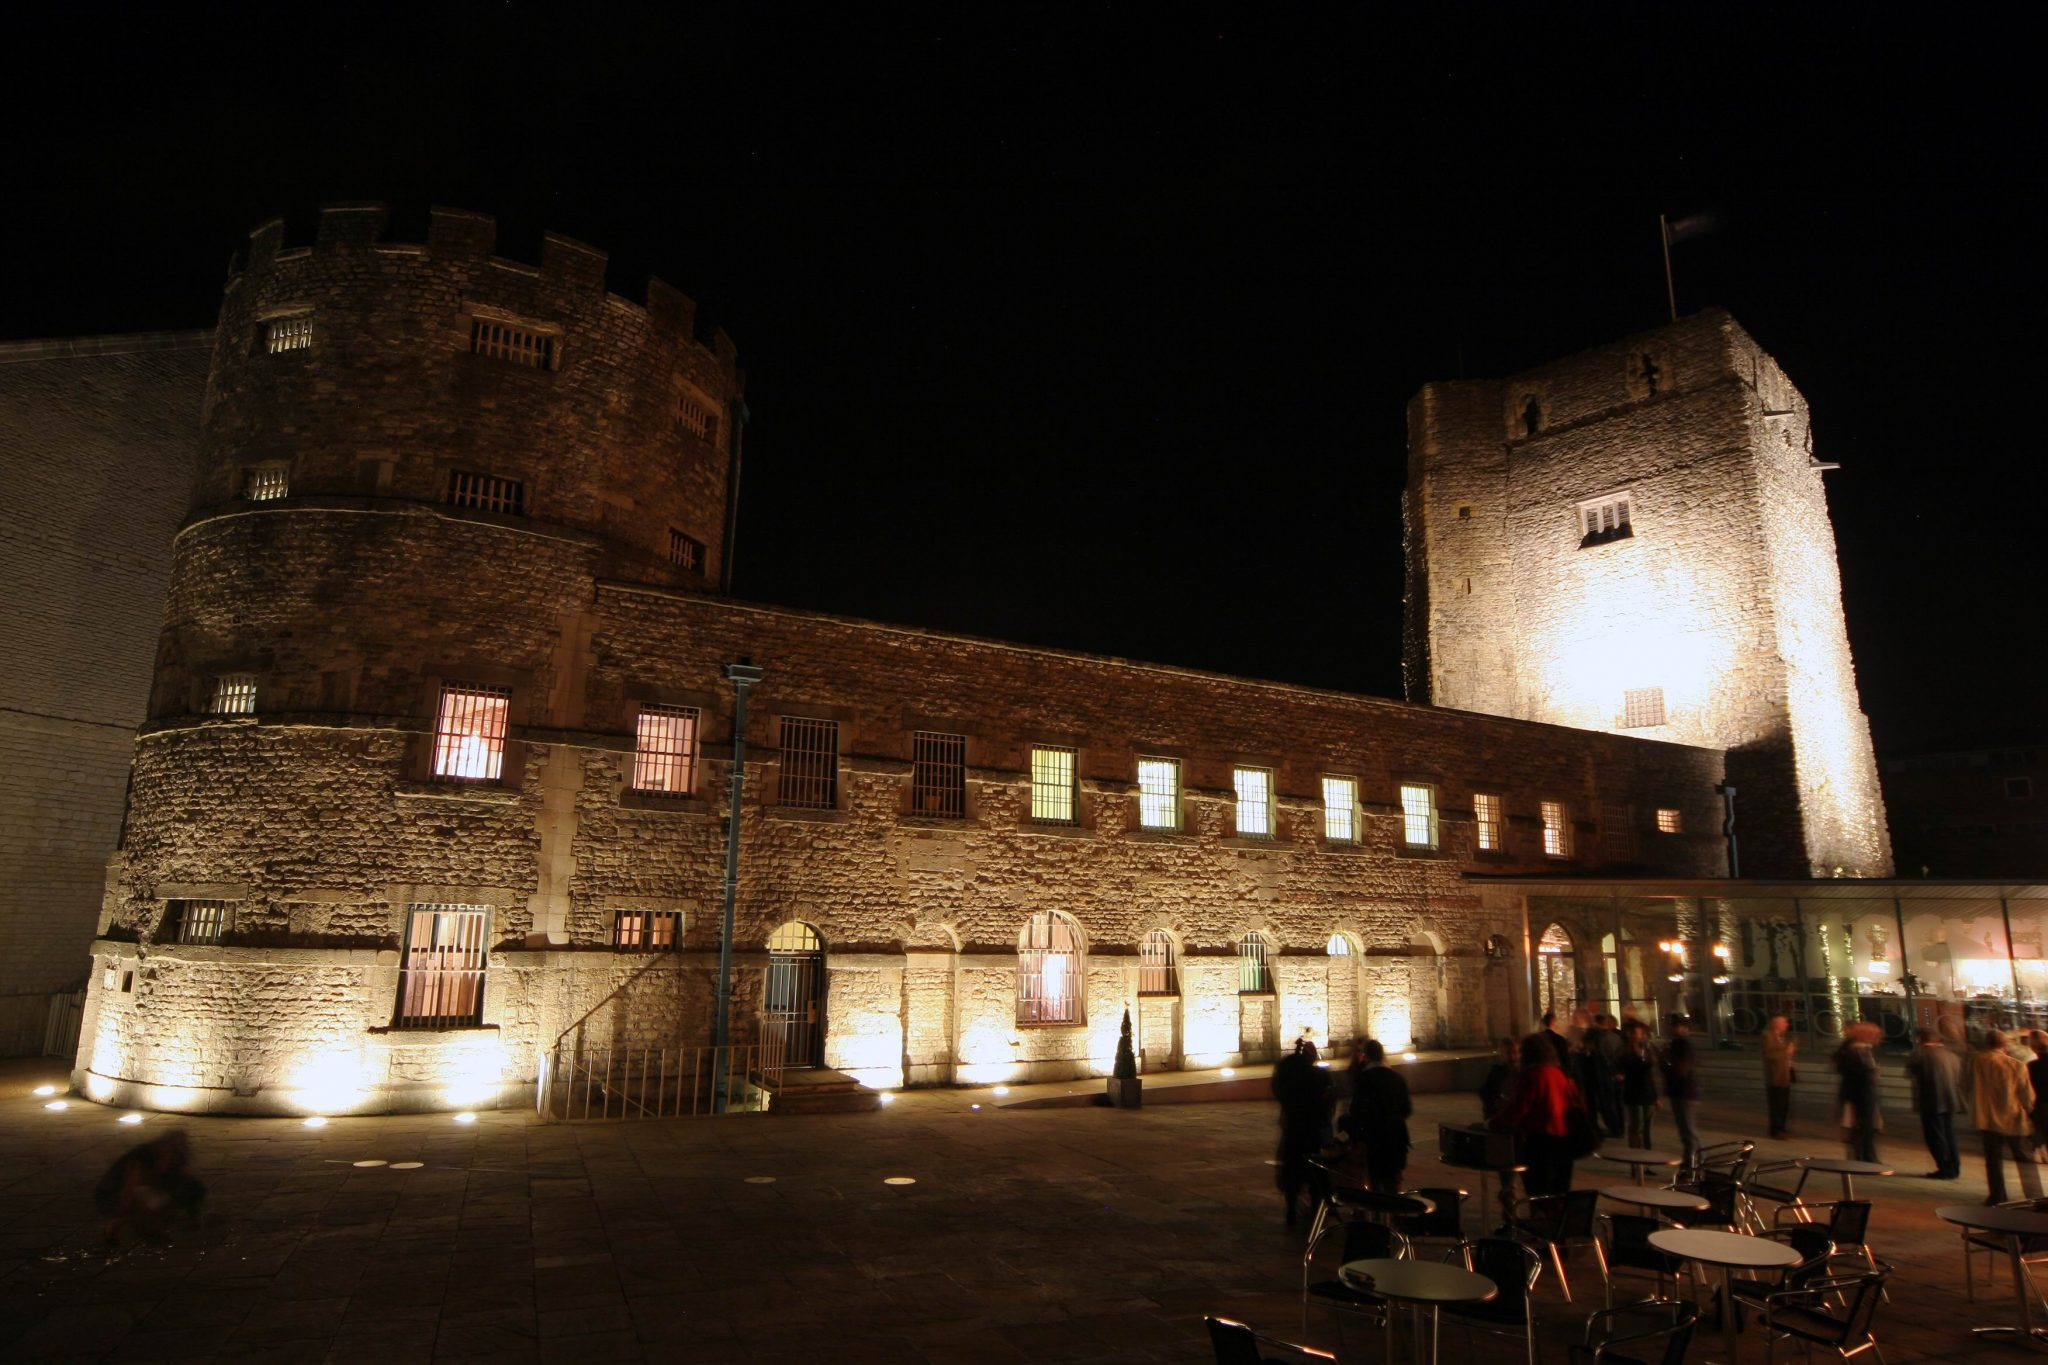 Ghosts of Oxford Castle – A Guest's Perspective